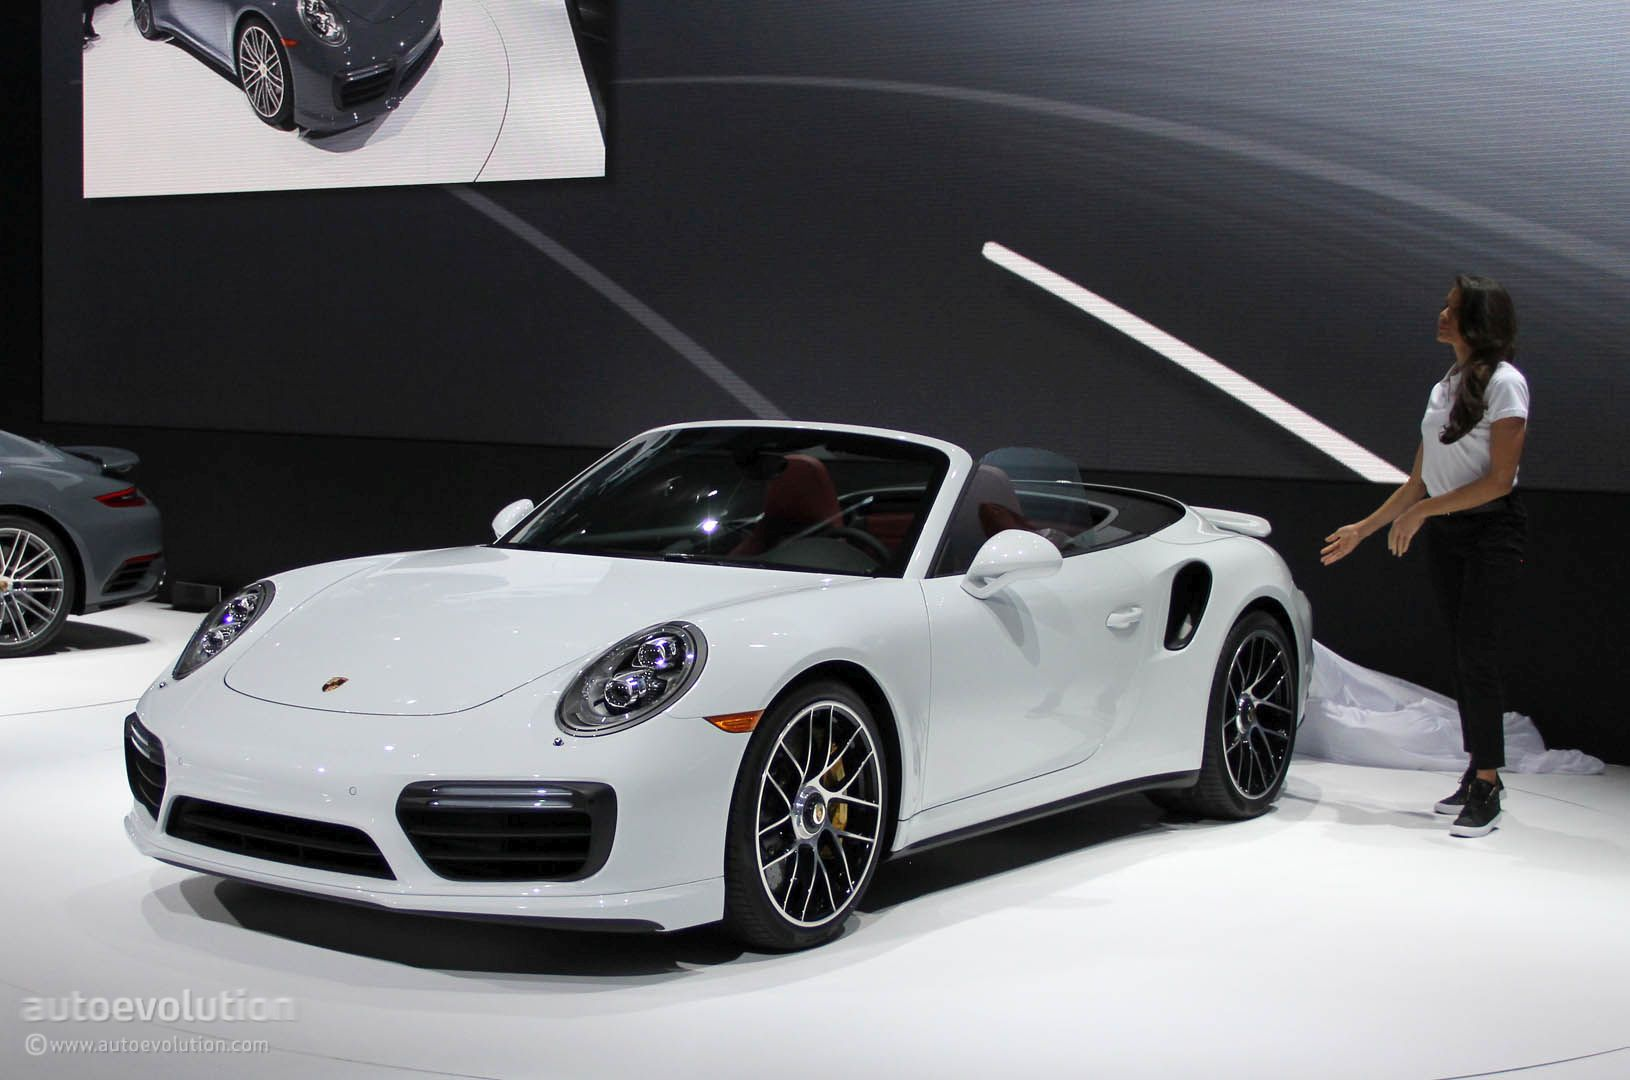 911 Carrera Gts >> A Porsche 911 Plug-In Hybrid Might Be Coming, but No ...